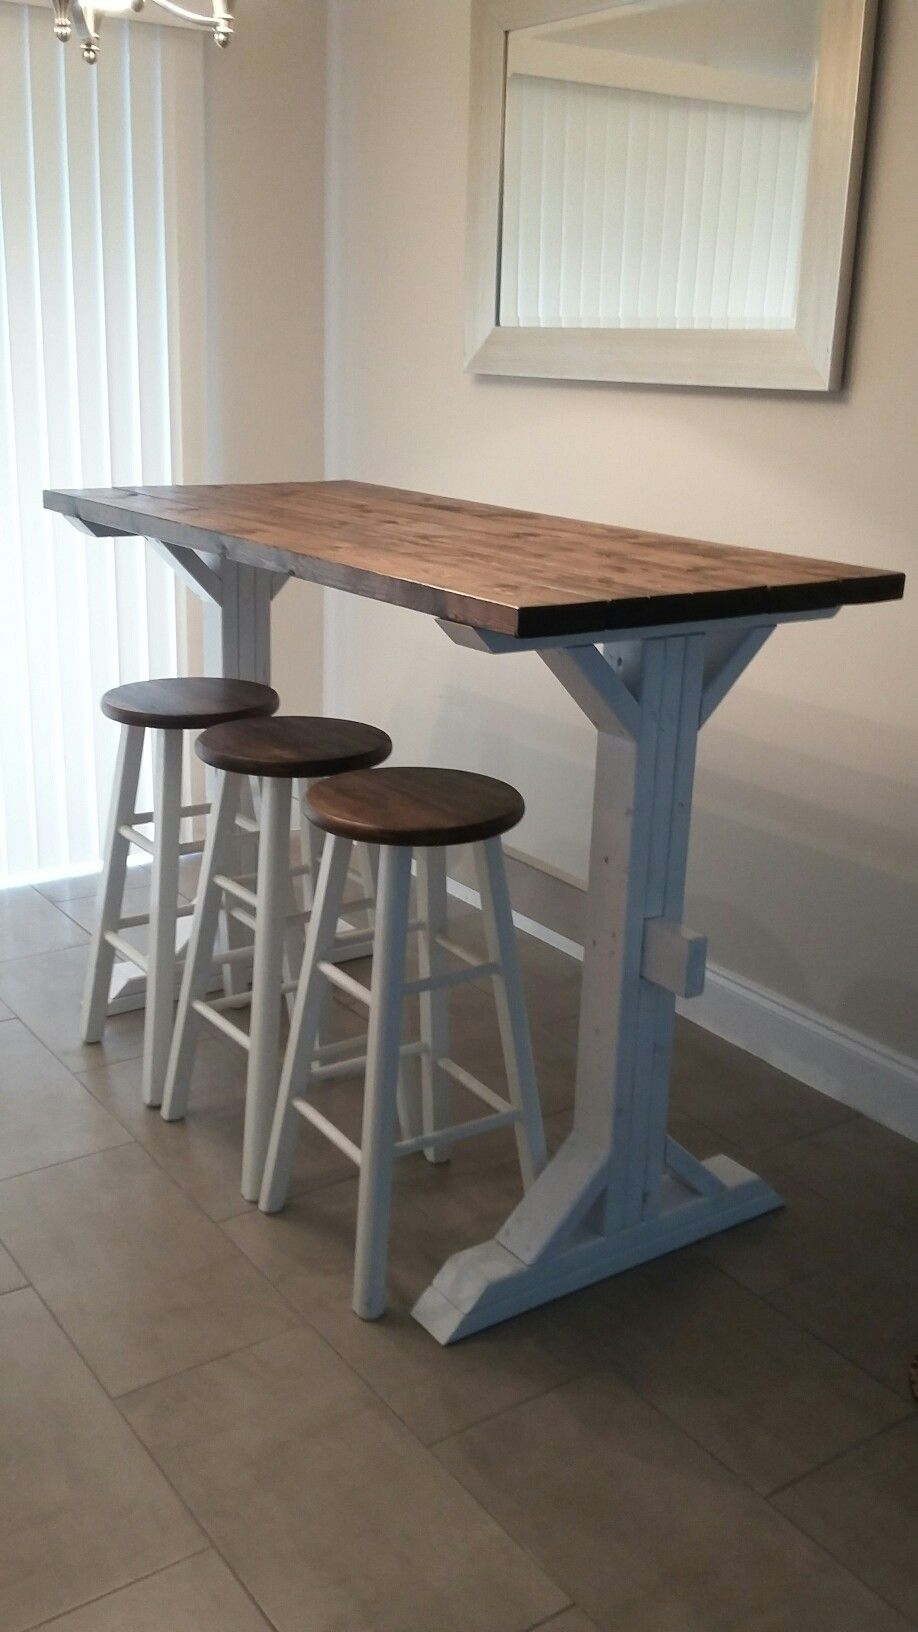 Farmhouse Style Bar Height Table DIY Bar Table Diy